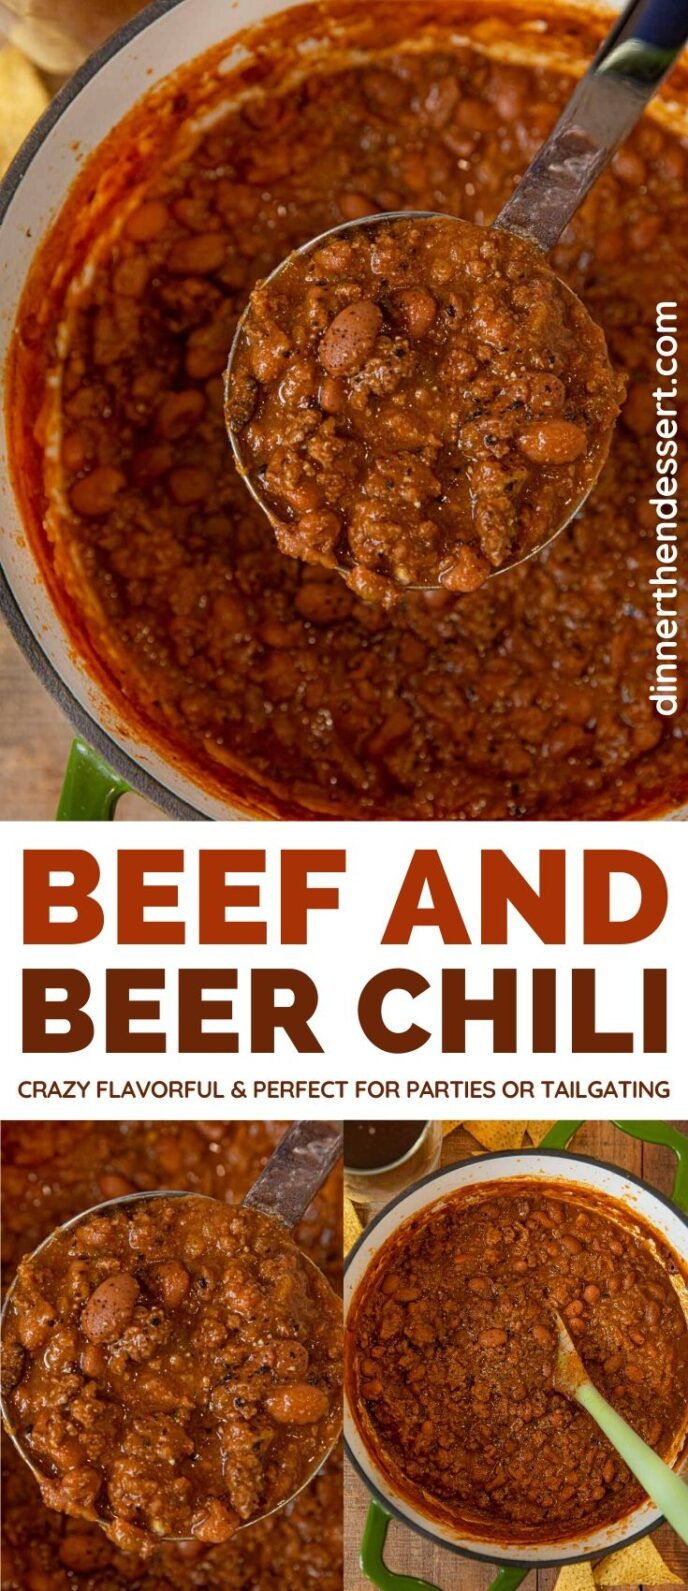 Beef and Beer Chili collage